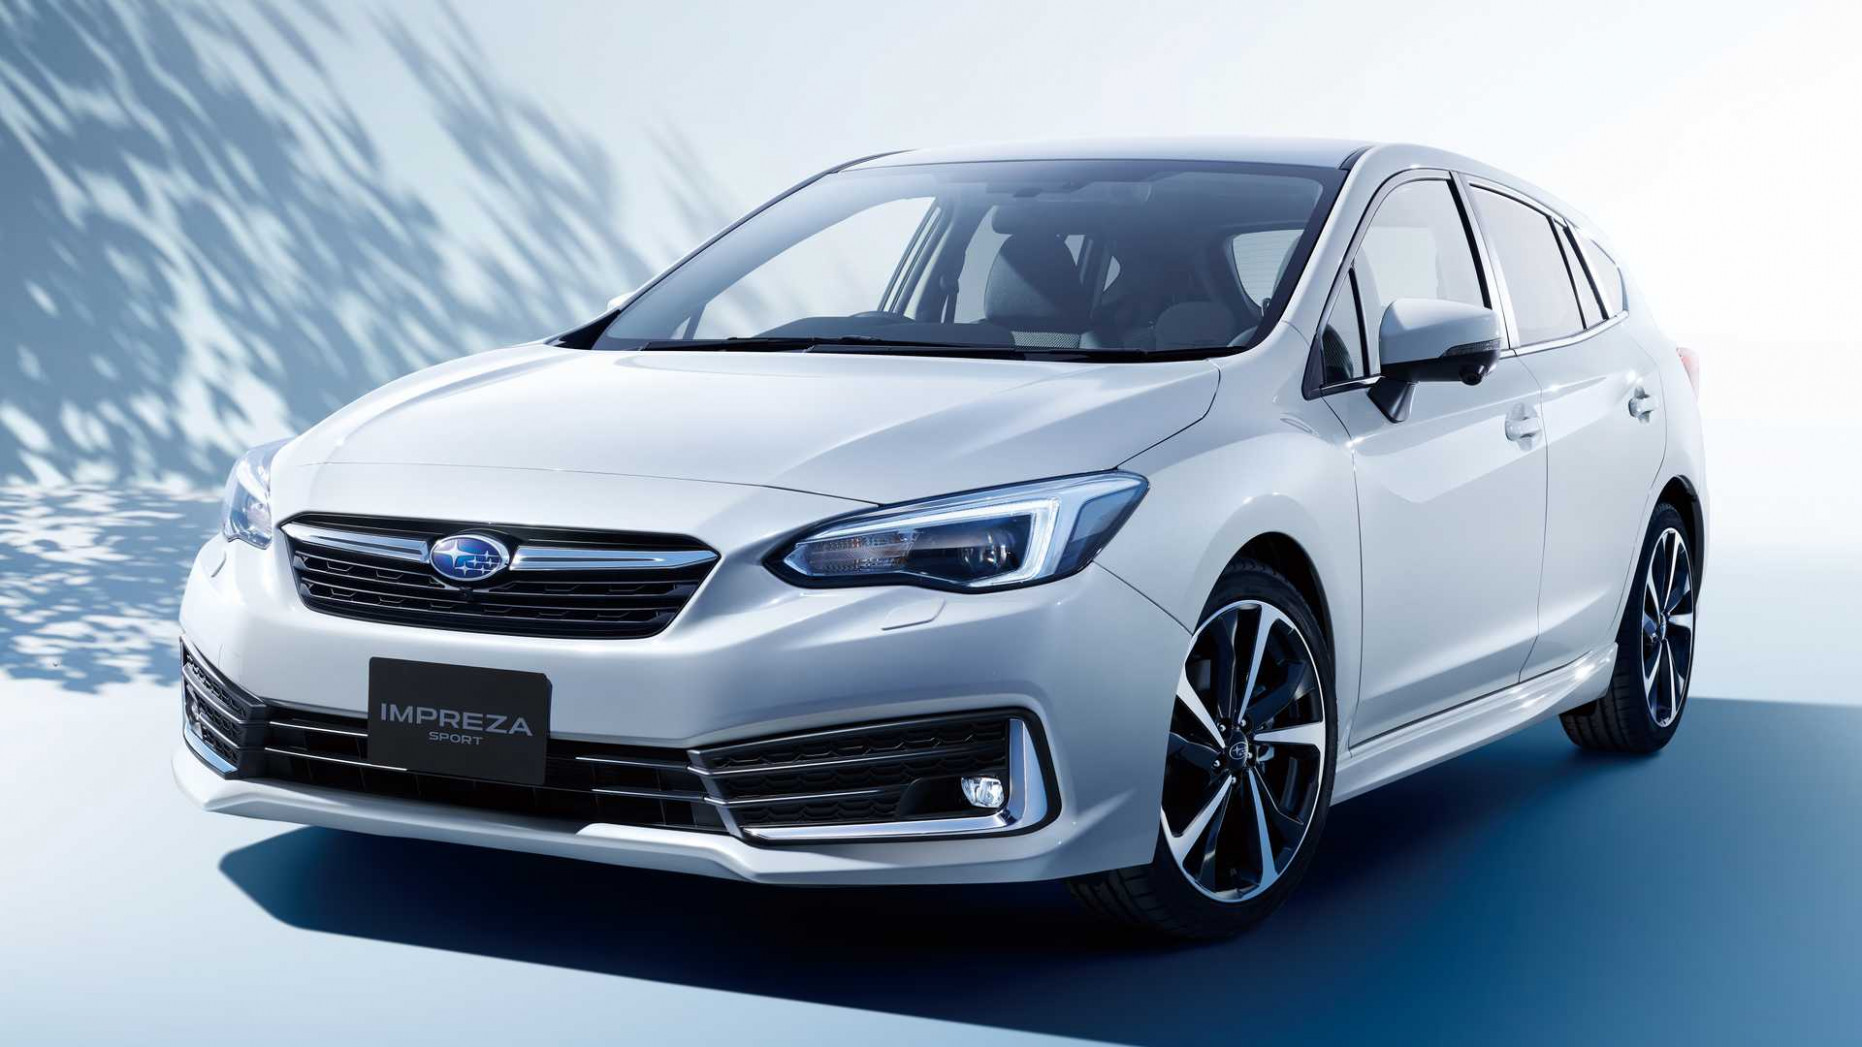 9 Subaru Impreza Revealed In Japan, But Where's The WRX?